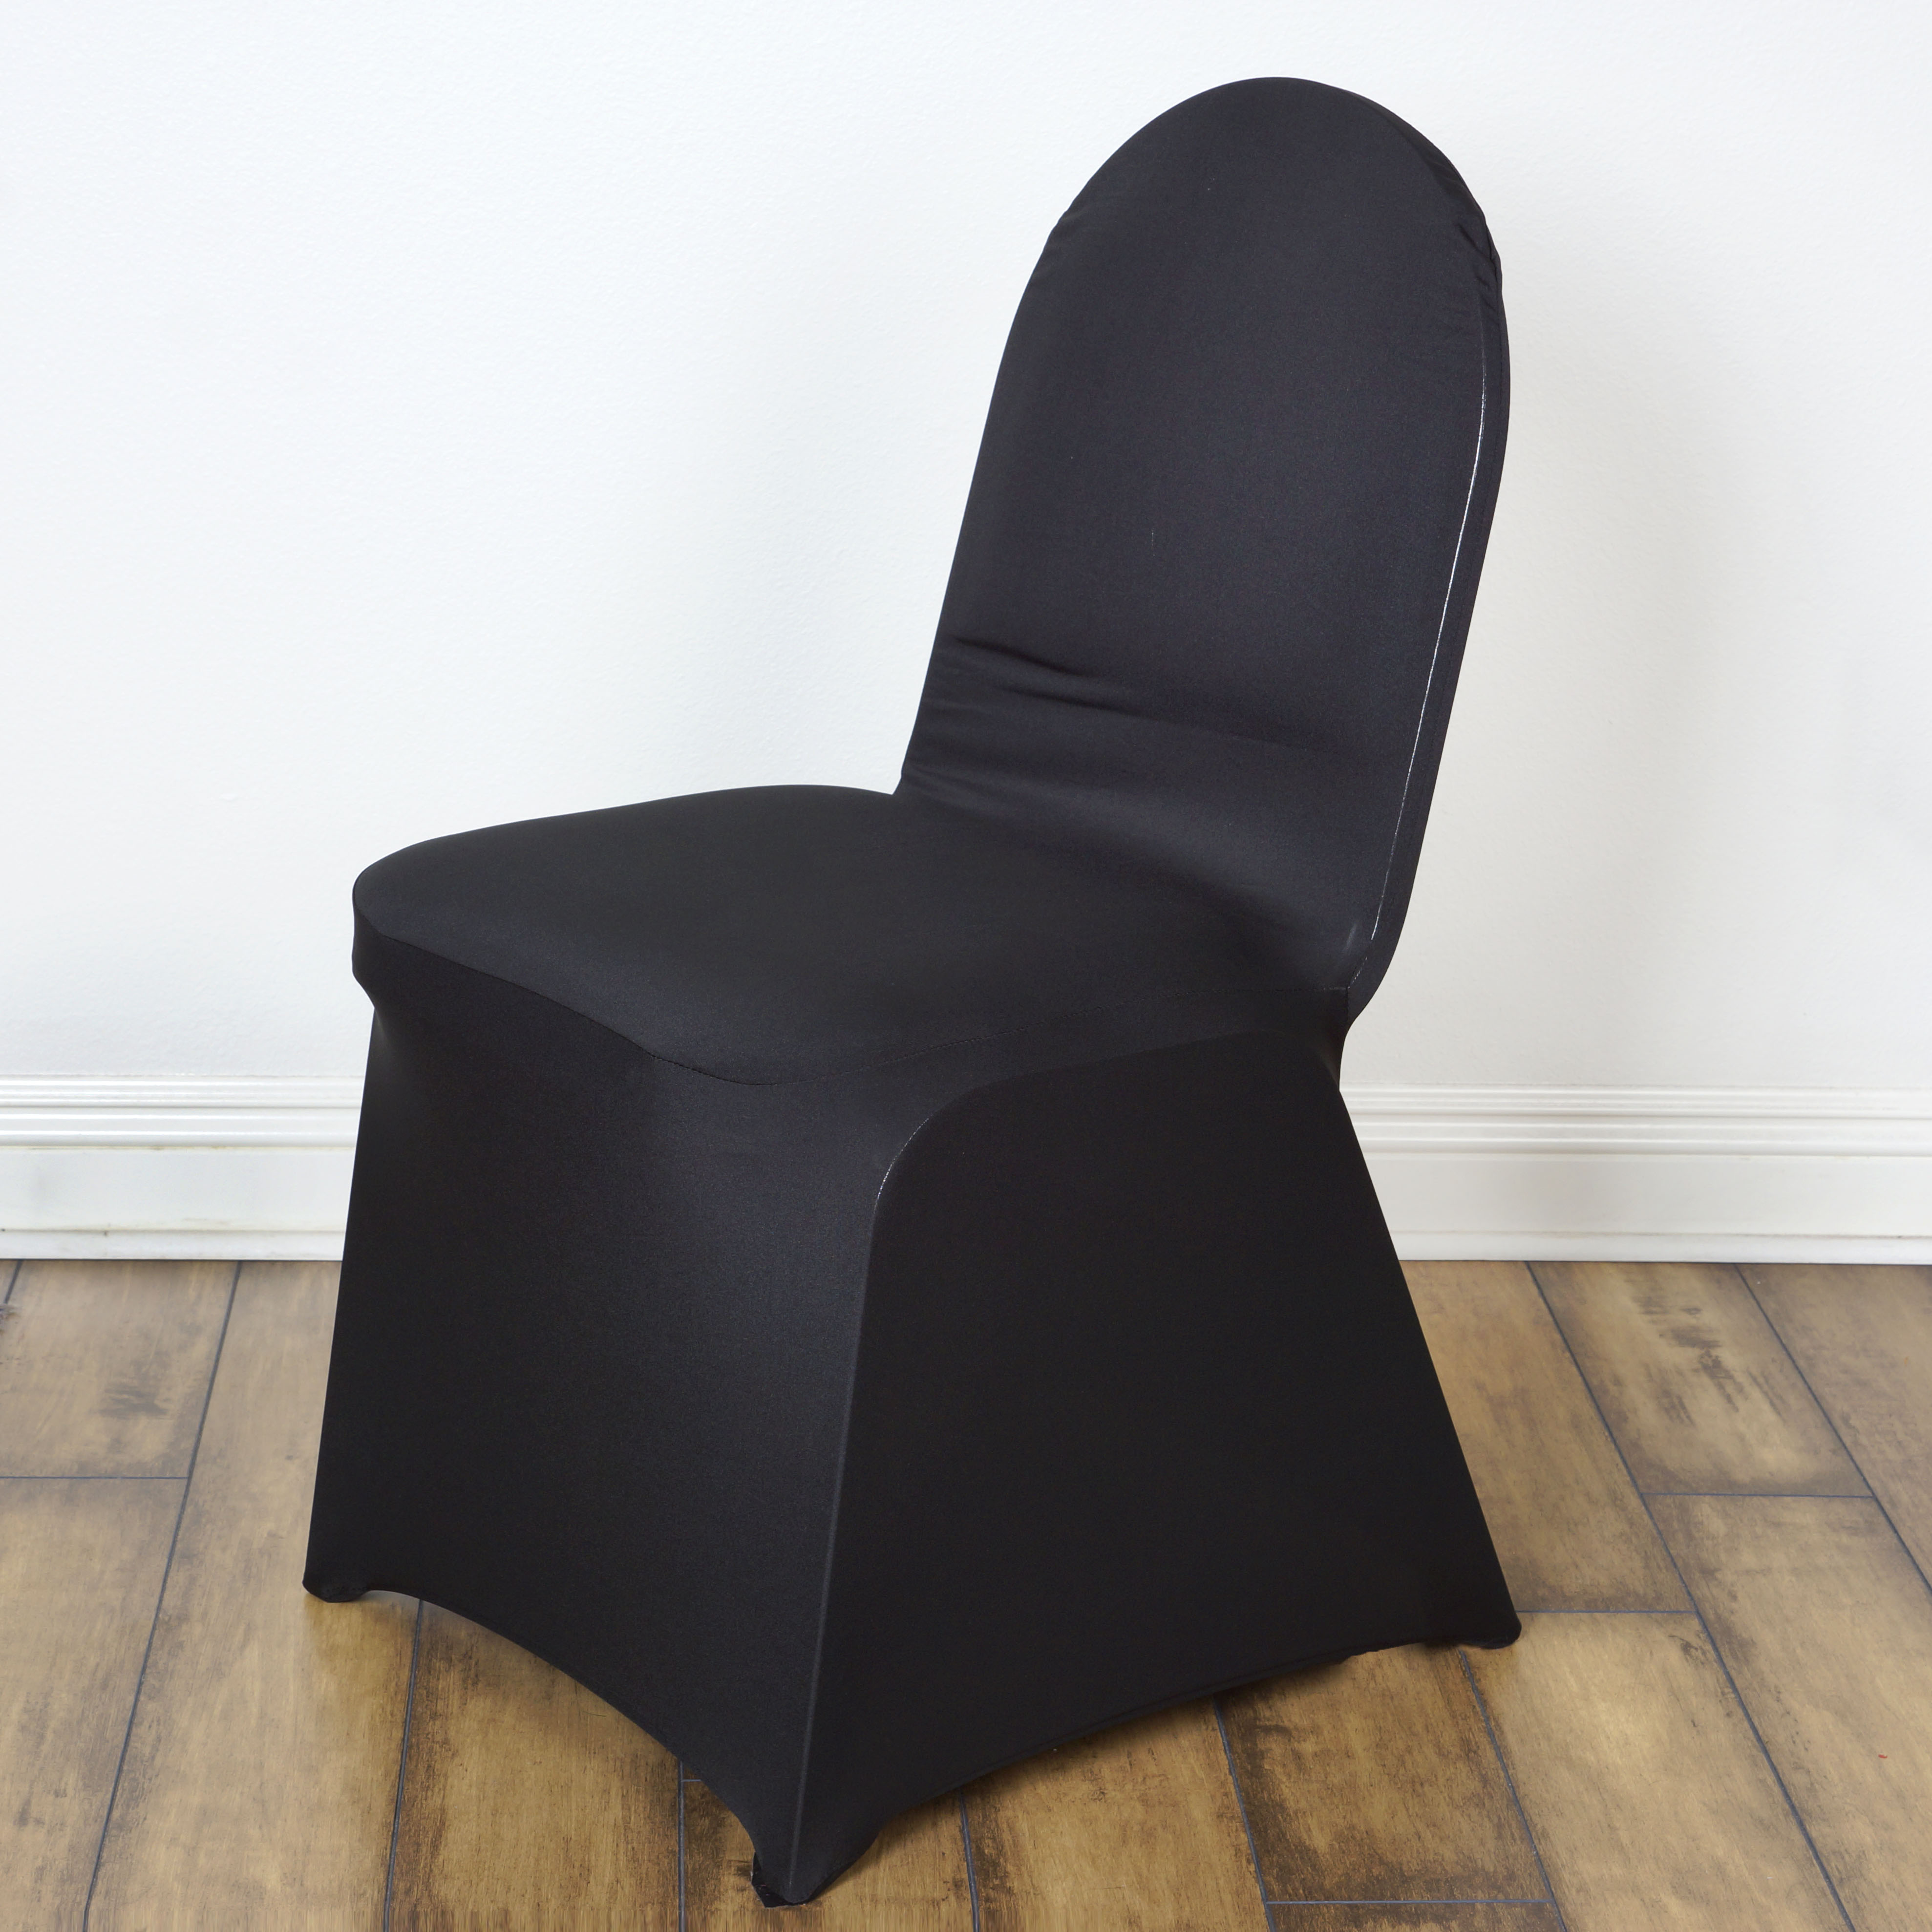 spandex stretchable chair covers wedding reception party decorations supply sale ebay. Black Bedroom Furniture Sets. Home Design Ideas